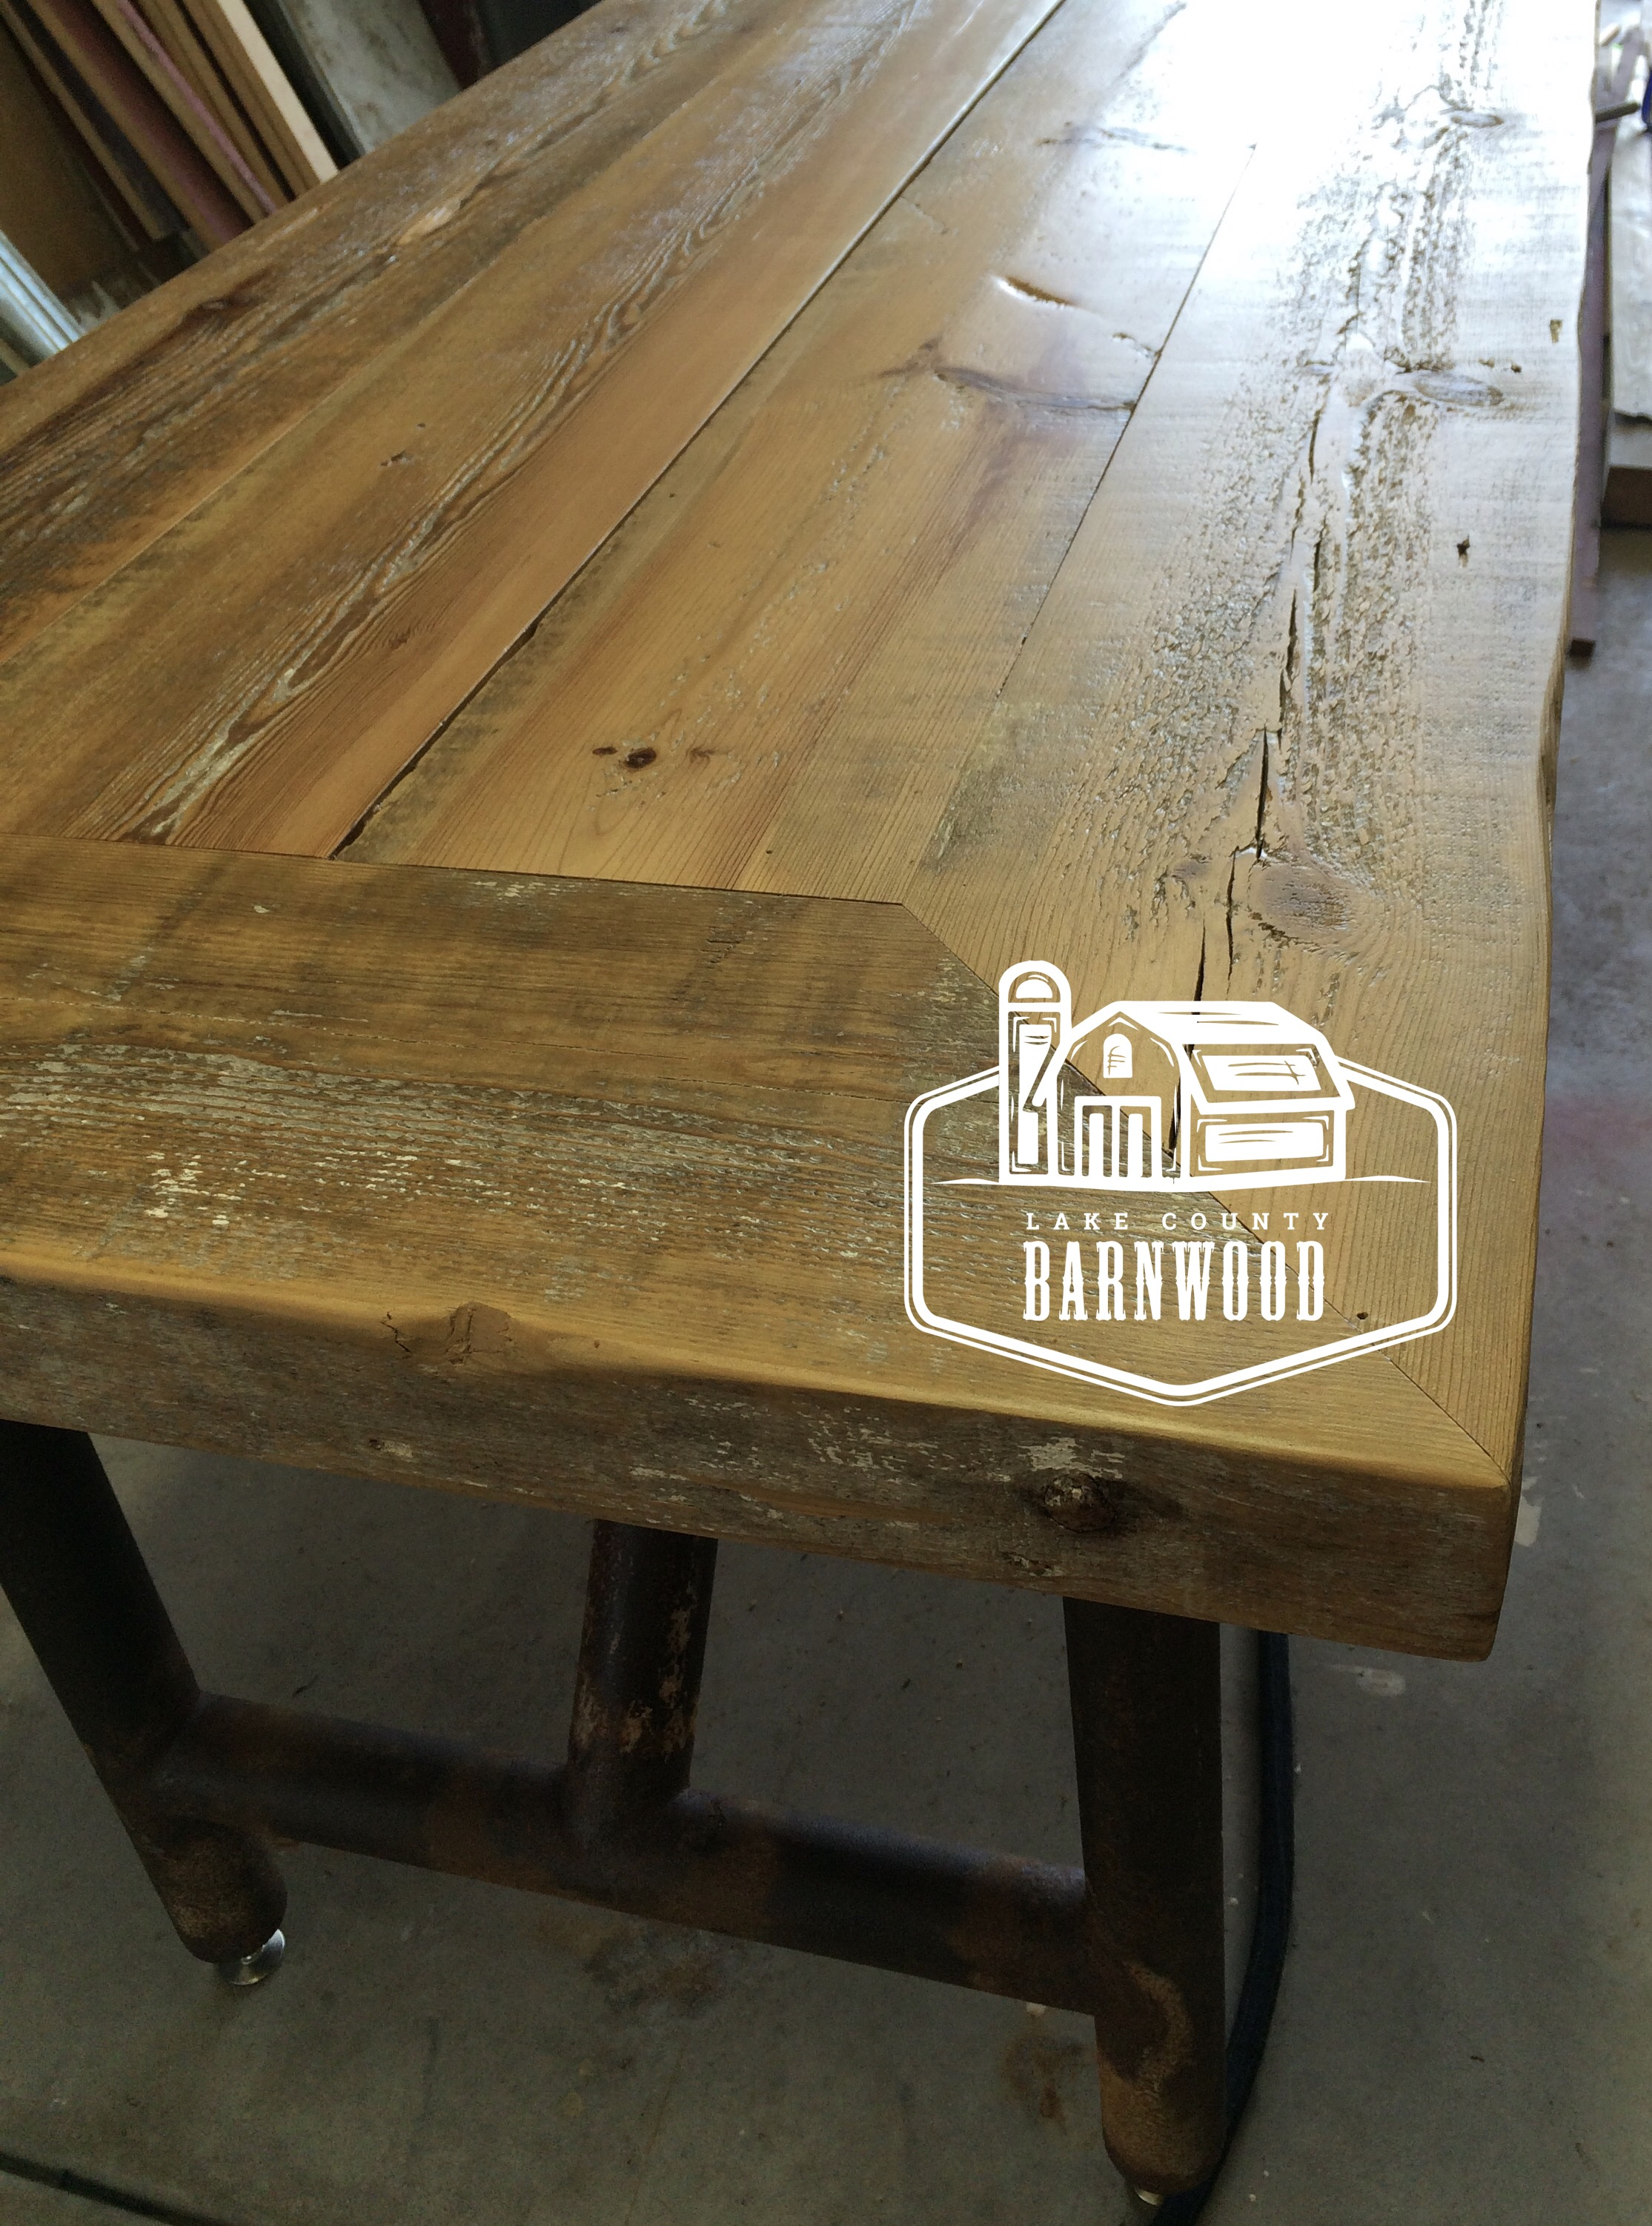 Custom FurnishingsHand Crafted Furniture And Decorative Accessories Made  From Repurposed Barn Wood.